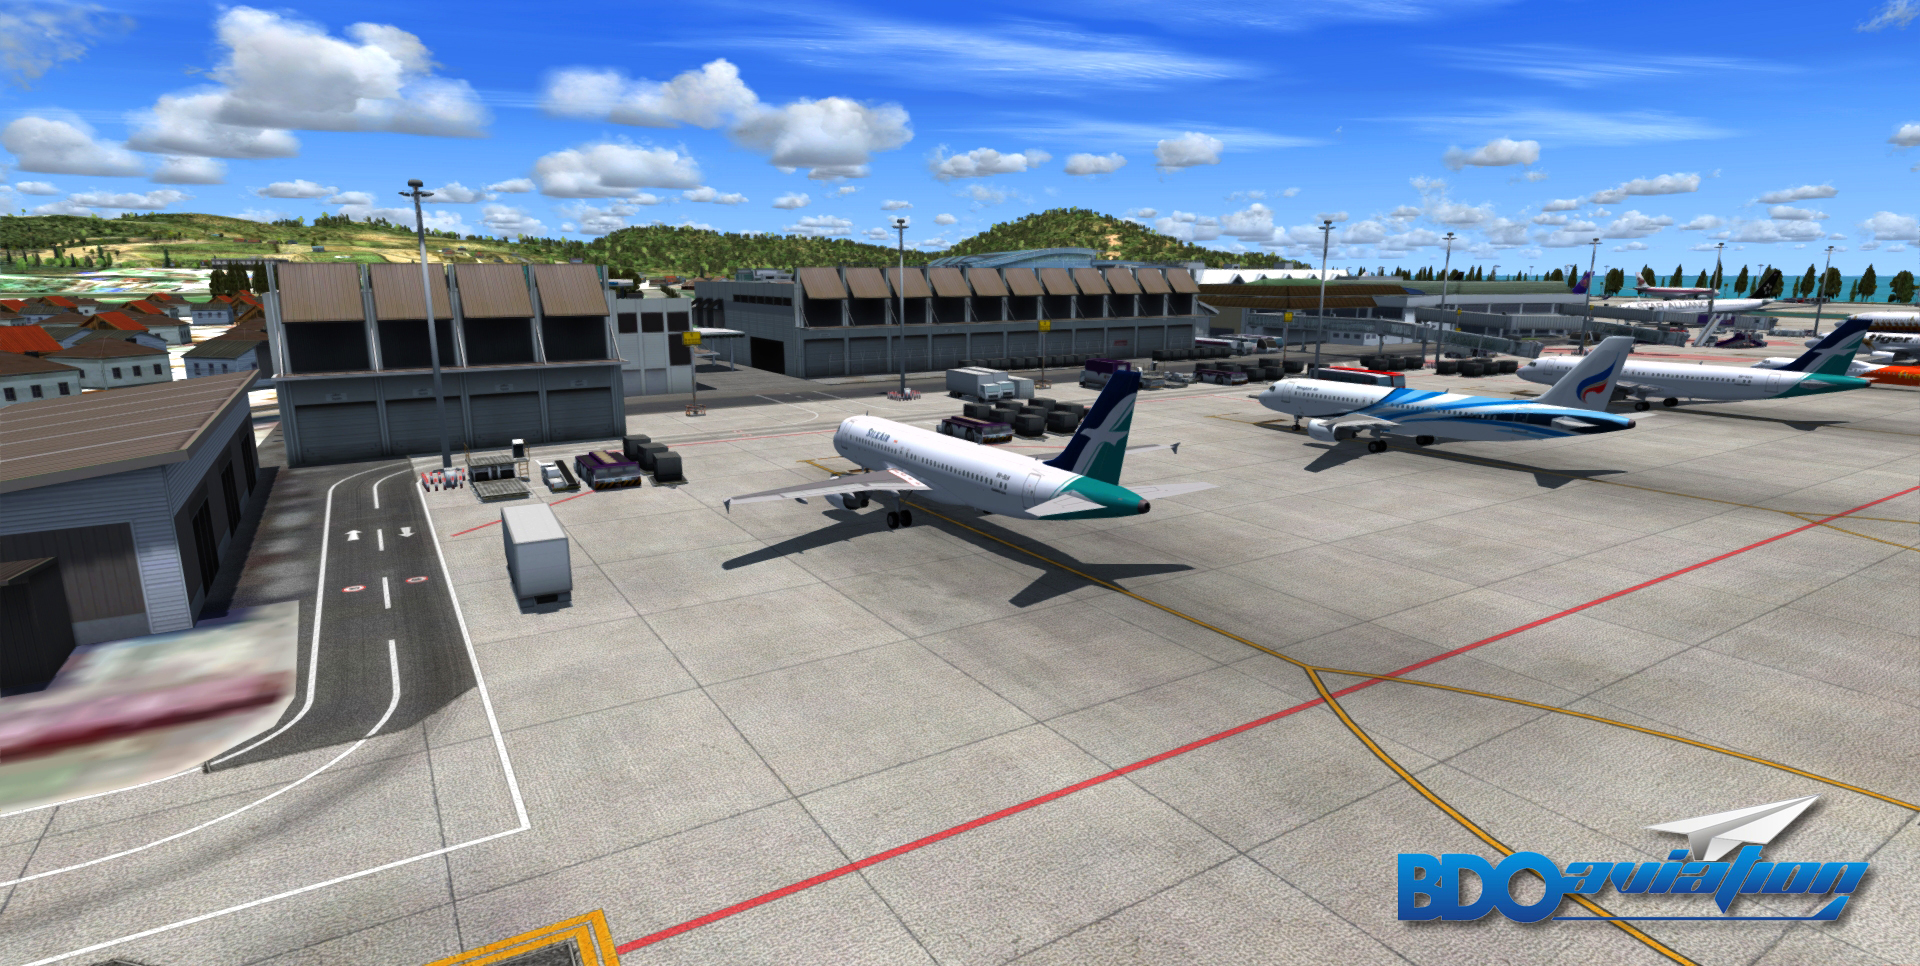 BDOAVIATION - PHUKET INTERNATIONAL AIRPORT FOR FSX & P3D